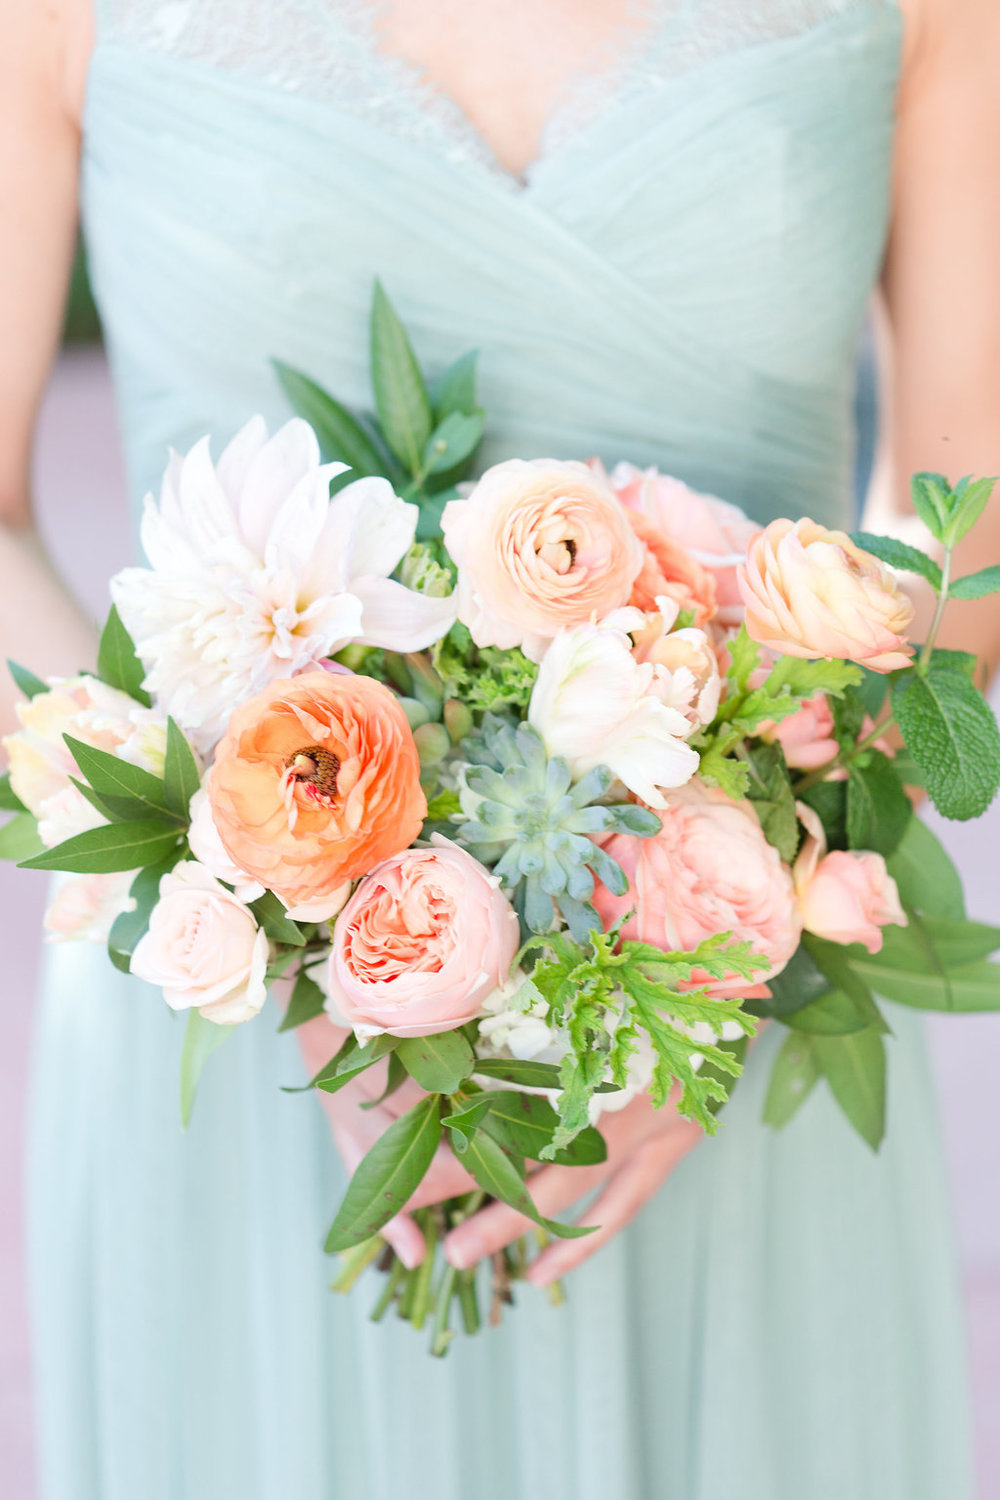 bridesmaid dress, mint green dress,  peach and mint wedding, blush and green wedding, Arizona Phoenix Scottsdale wedding planner, peach flowers, blush flowers, garden bouquet, desert wedding